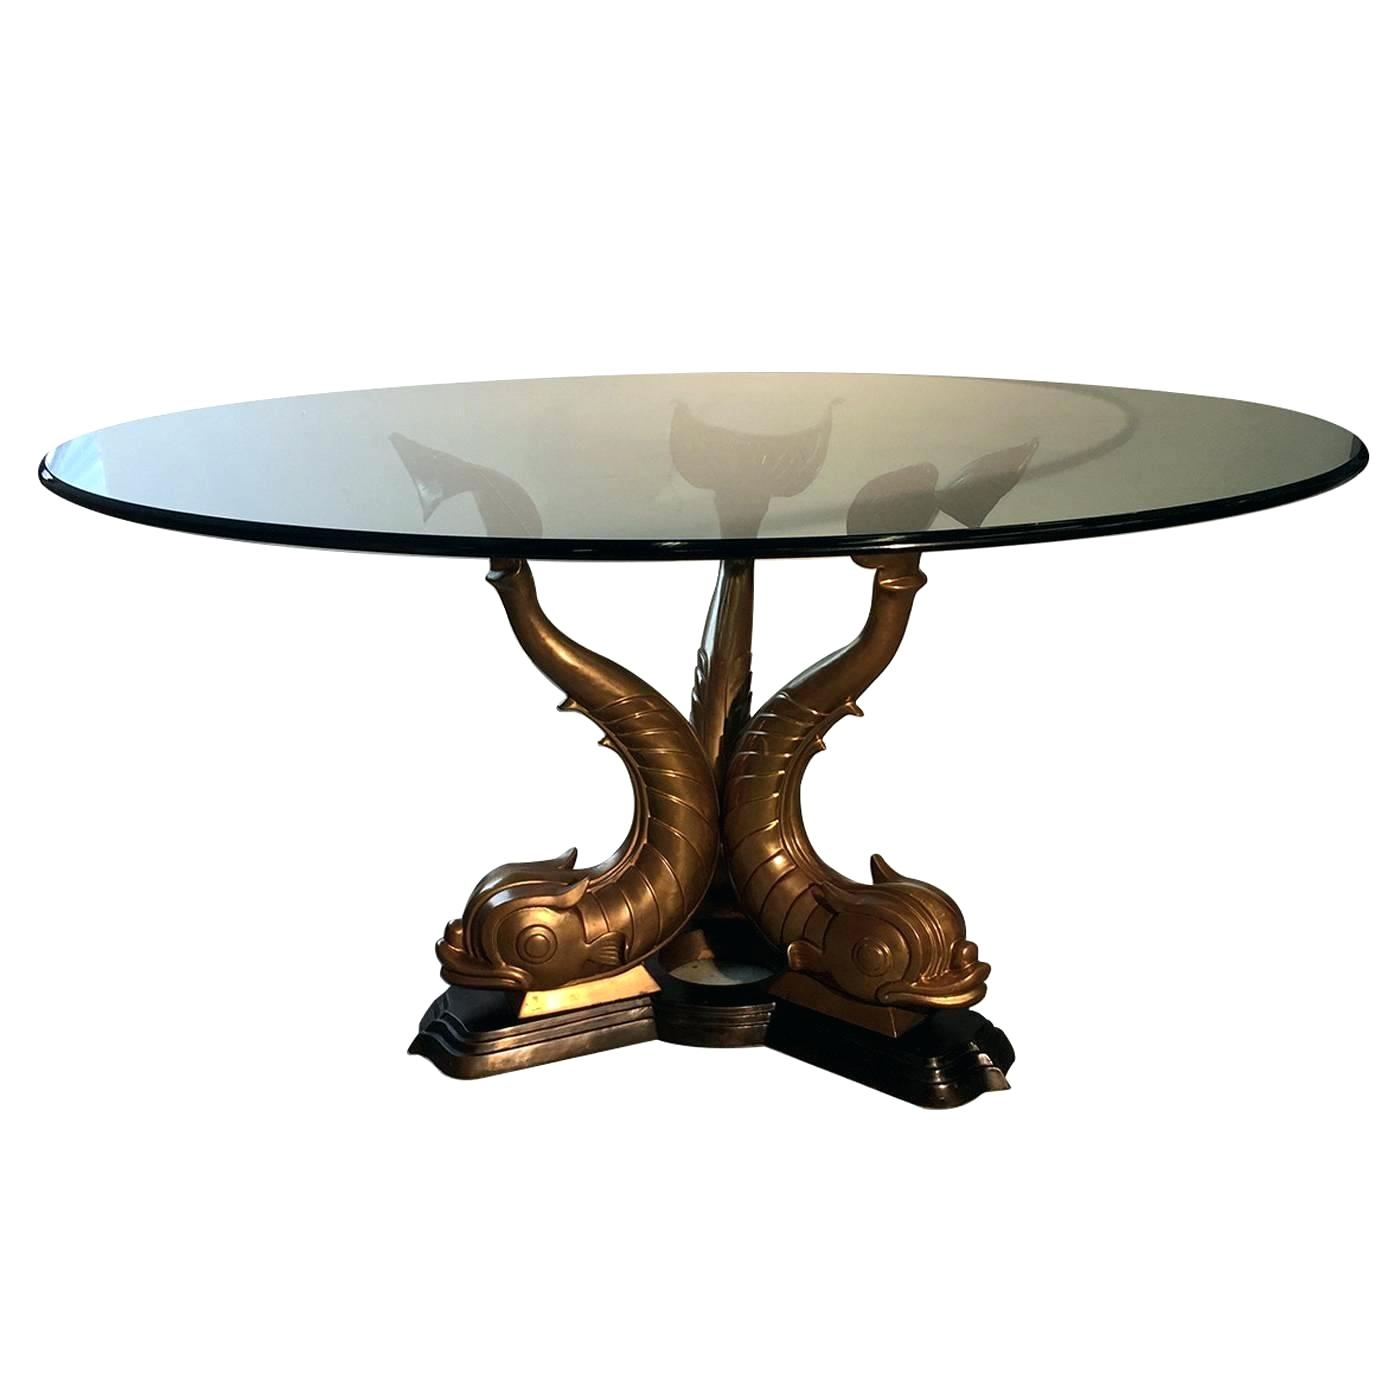 dolphin table with glass top design ideas bronze triple base for end coffee elephant center contemporary rectangular grey and silver lamps card chairs target built appliances